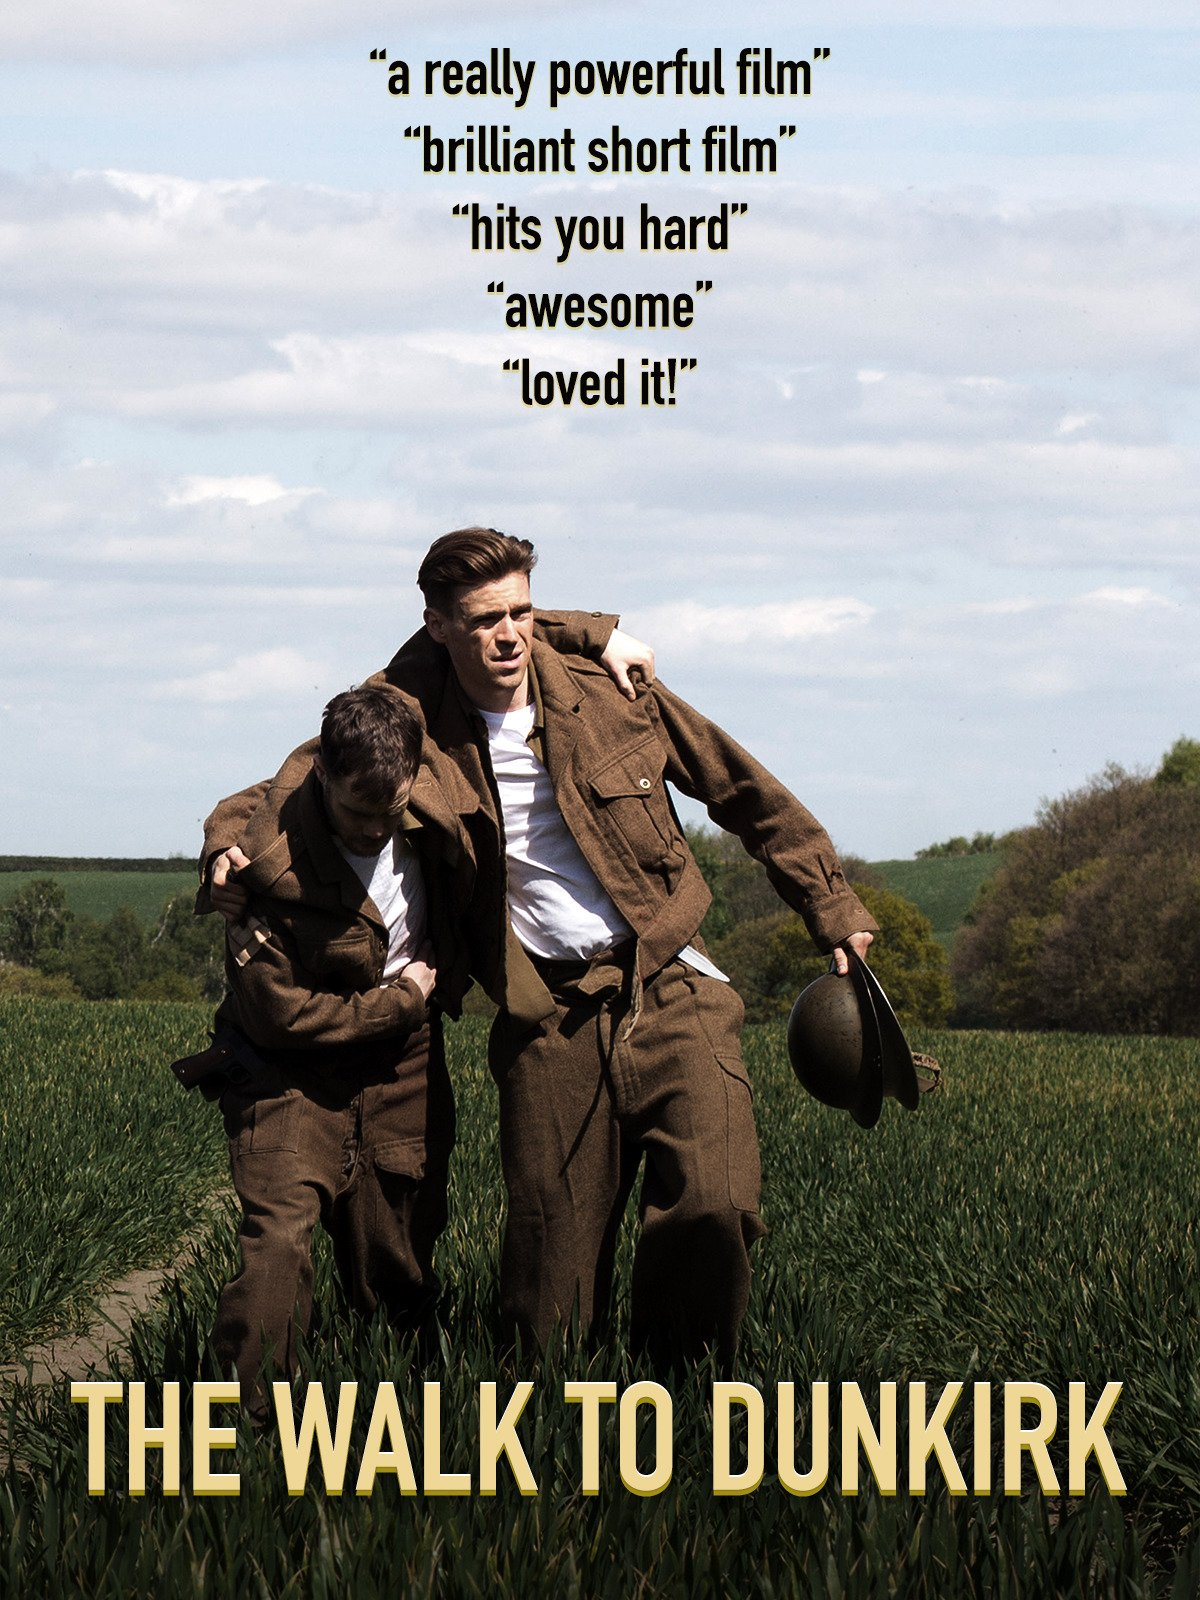 The Walk to Dunkirk